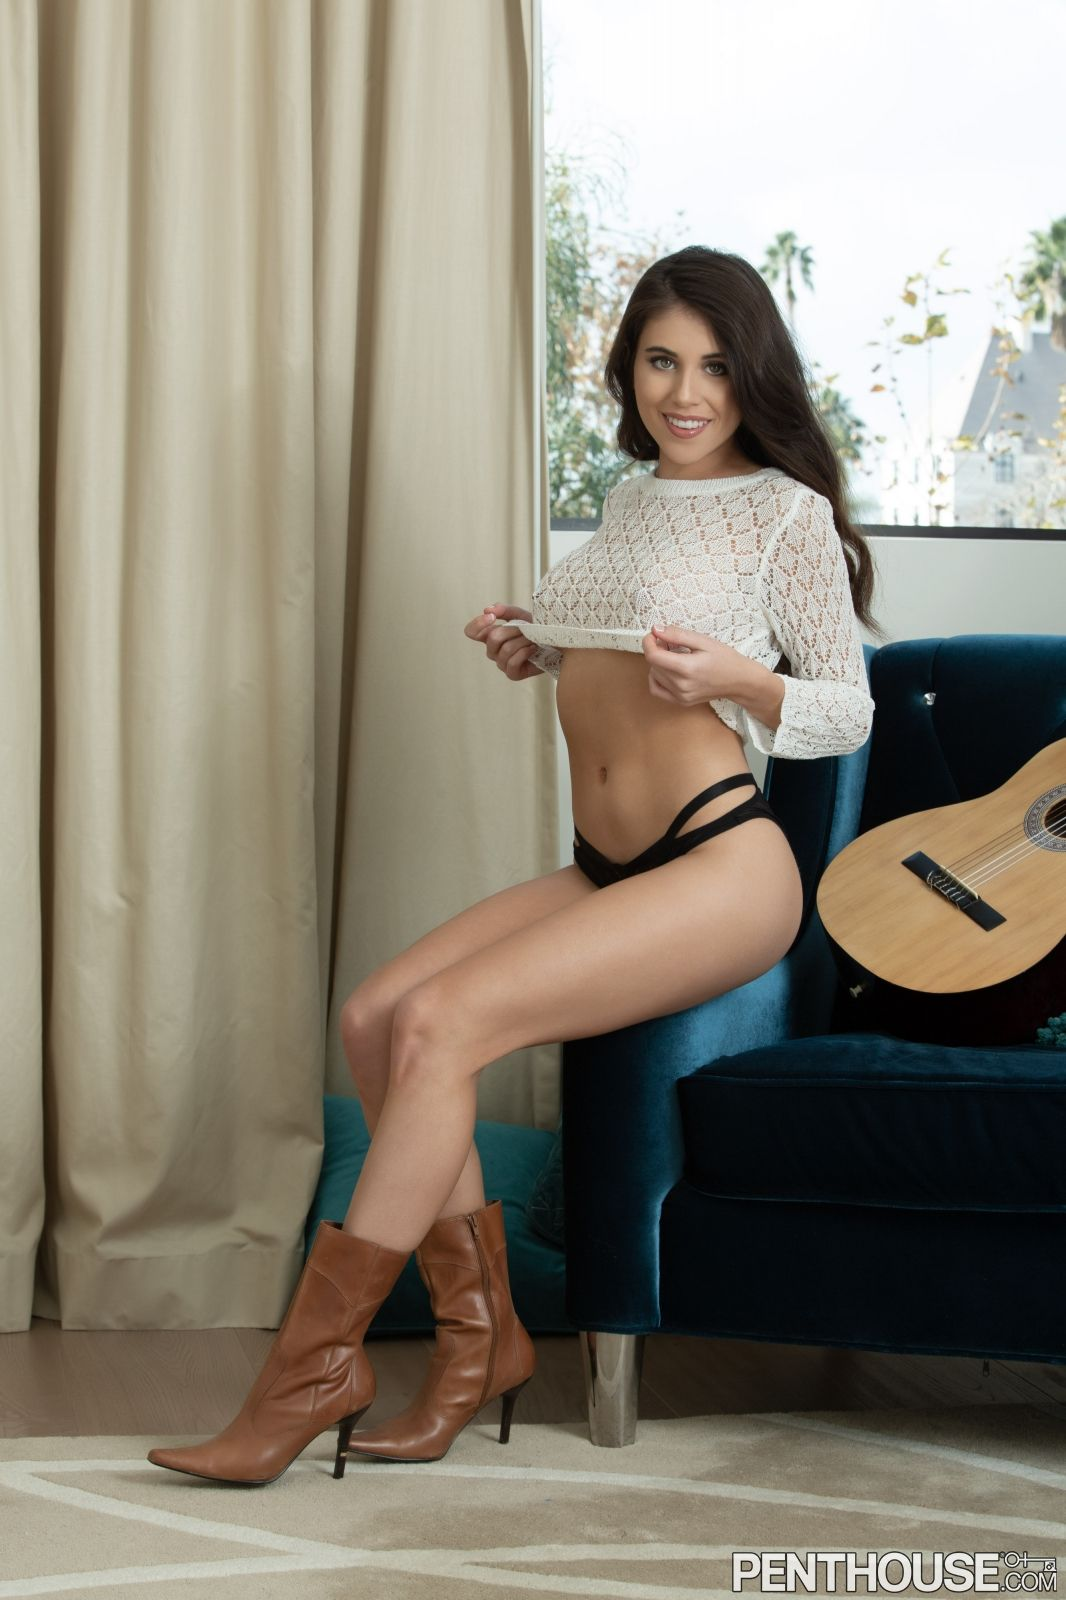 Violet Summers Nude Leaked Photos 0046